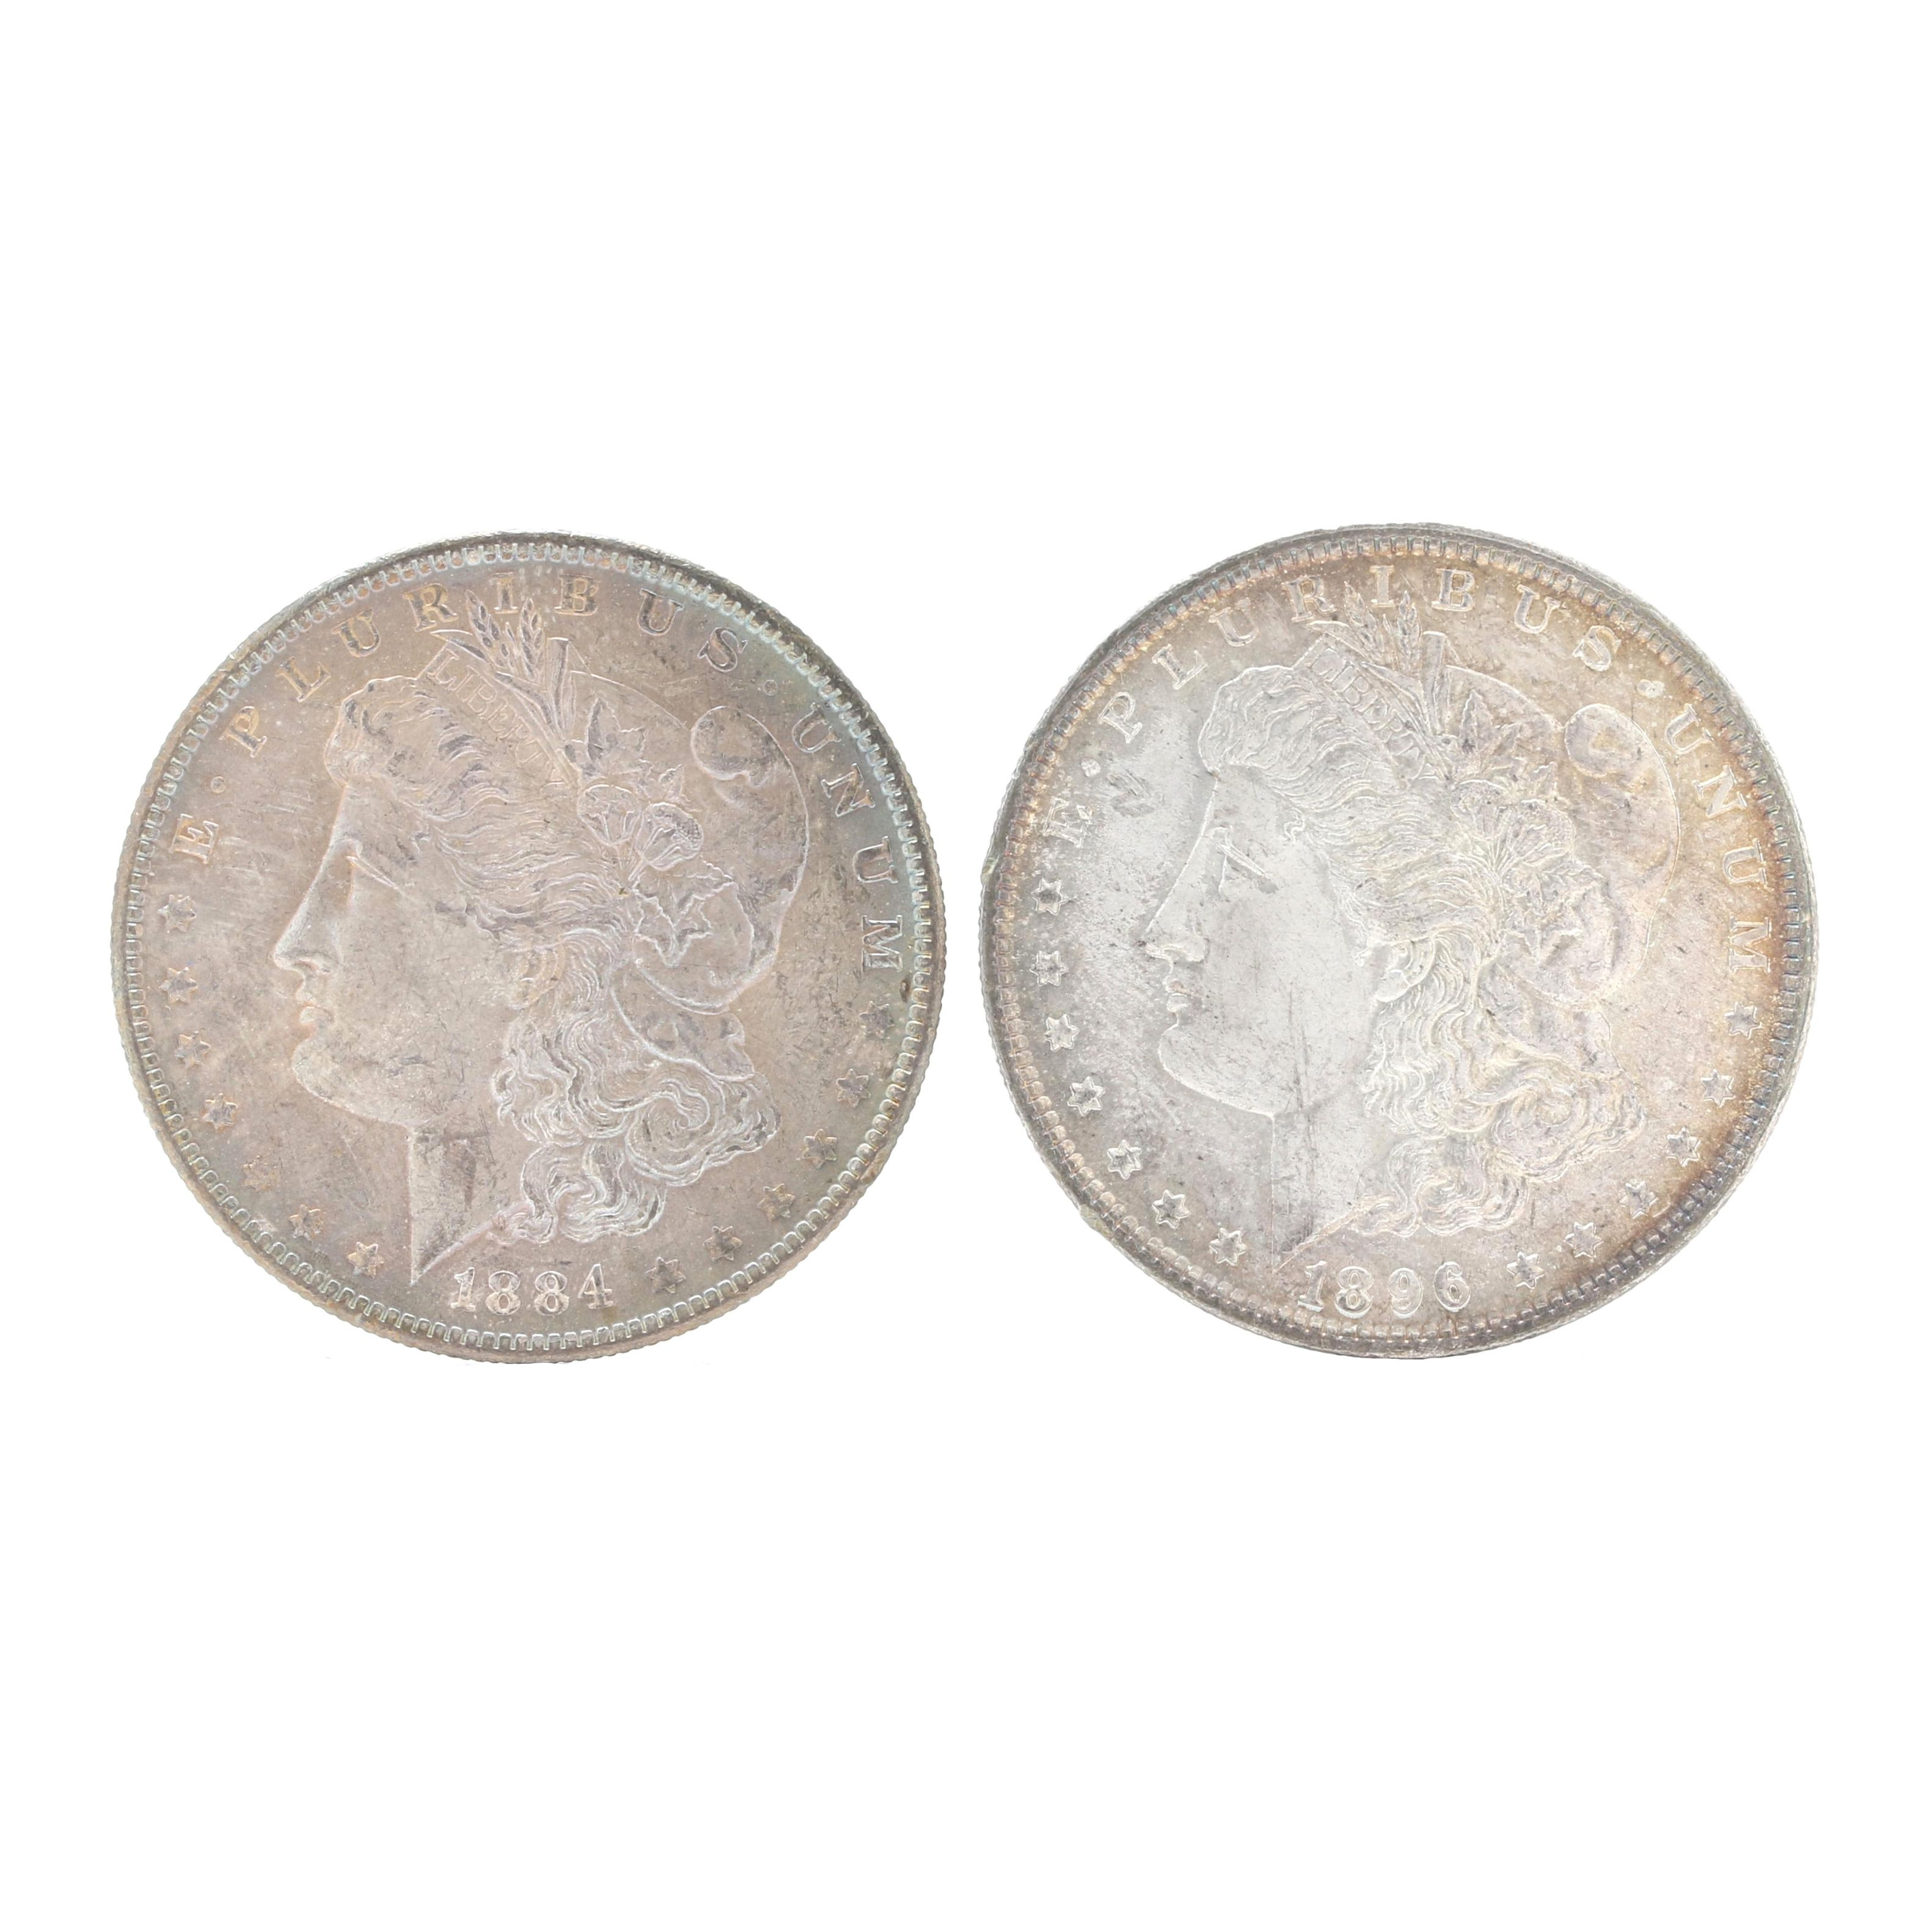 1884-O and 1896 Morgan Silver Dollars